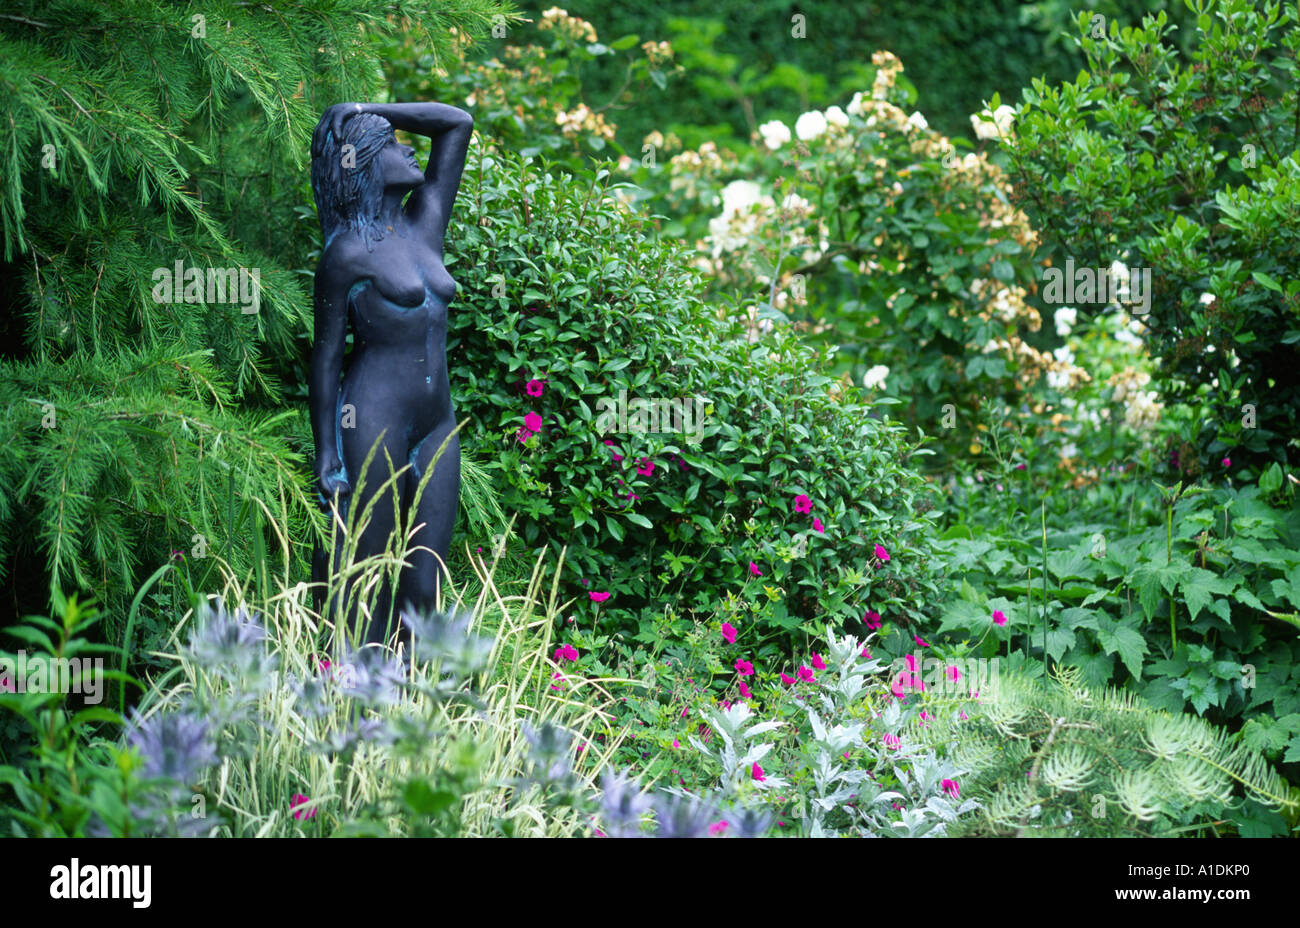 Garden Statue Bronze Garden Statue Of A Naked Lady In A Bed Of Willowherb